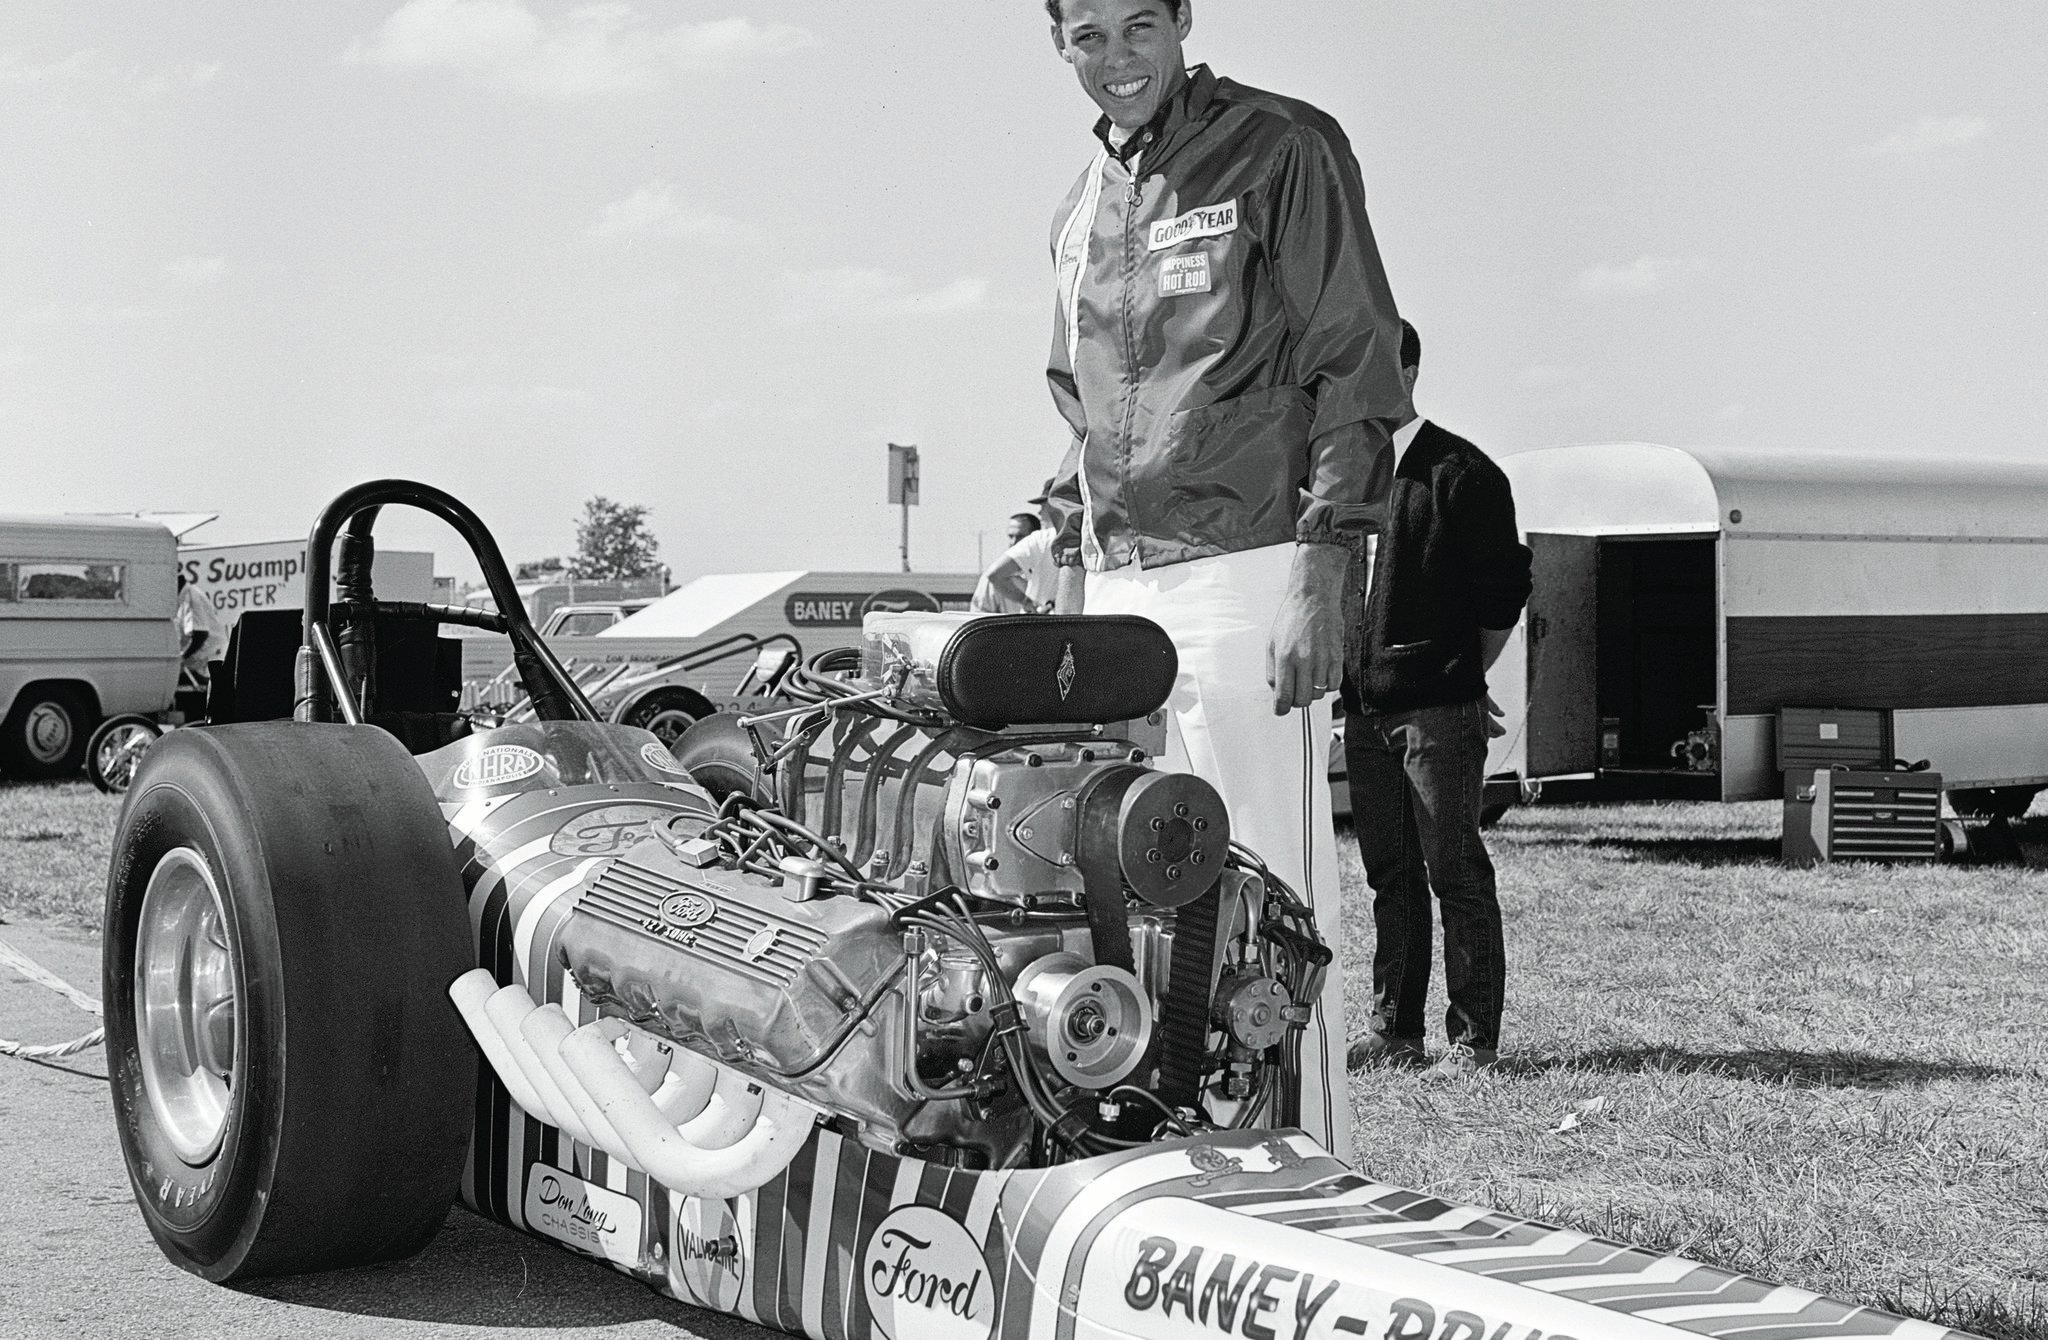 Don Prudhomme's 1967 Springnationals victory was a major milestone for the Cammer, owner Lou Baney, and Prudhomme. He posted the first 6-second Top Fuel runs at a national event in Lou Baney's Brand Ford Special dragster built by Don Long with an Ed Pink SOHC. Others had recorded 6-second times, but Prudhomme was the first to do it at a major NHRA meet.